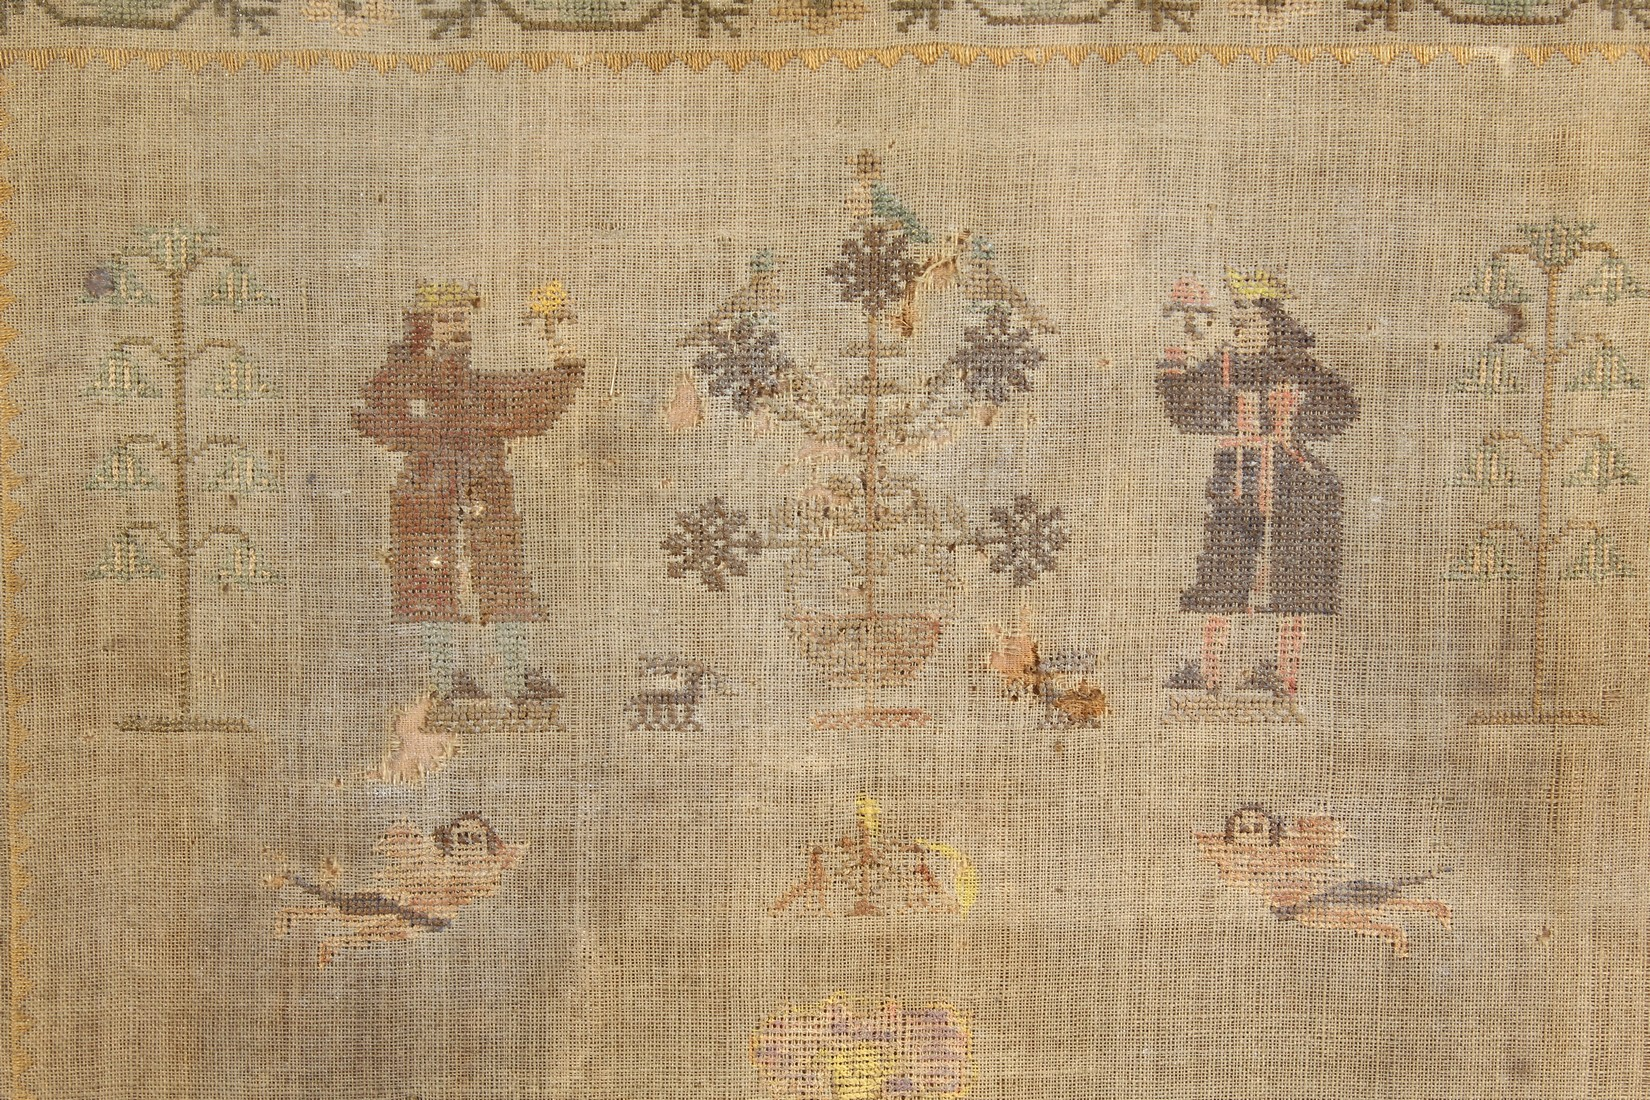 A 19TH CENTURY SAMPLER, depicting figures, flowers and a poem by Ann Powis dated 1837. 21.5ins and - Image 2 of 4